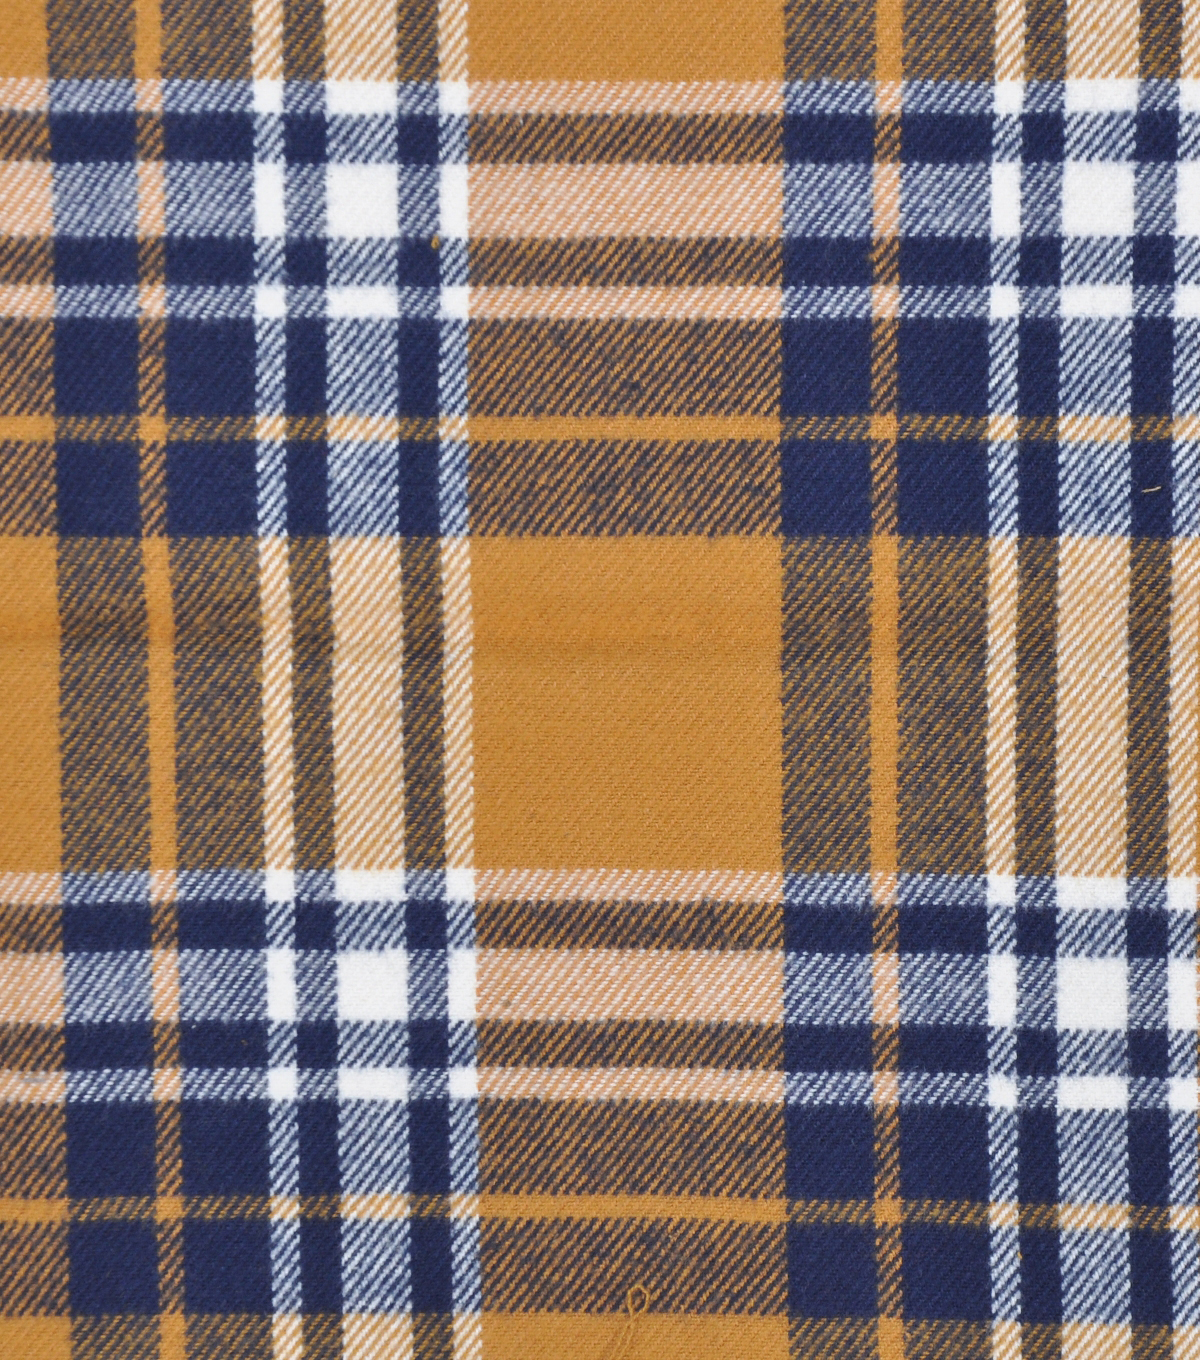 Plaiditudes Brushed Cotton Fabric-Gold, Navy & Ivory Tricolor Plaid